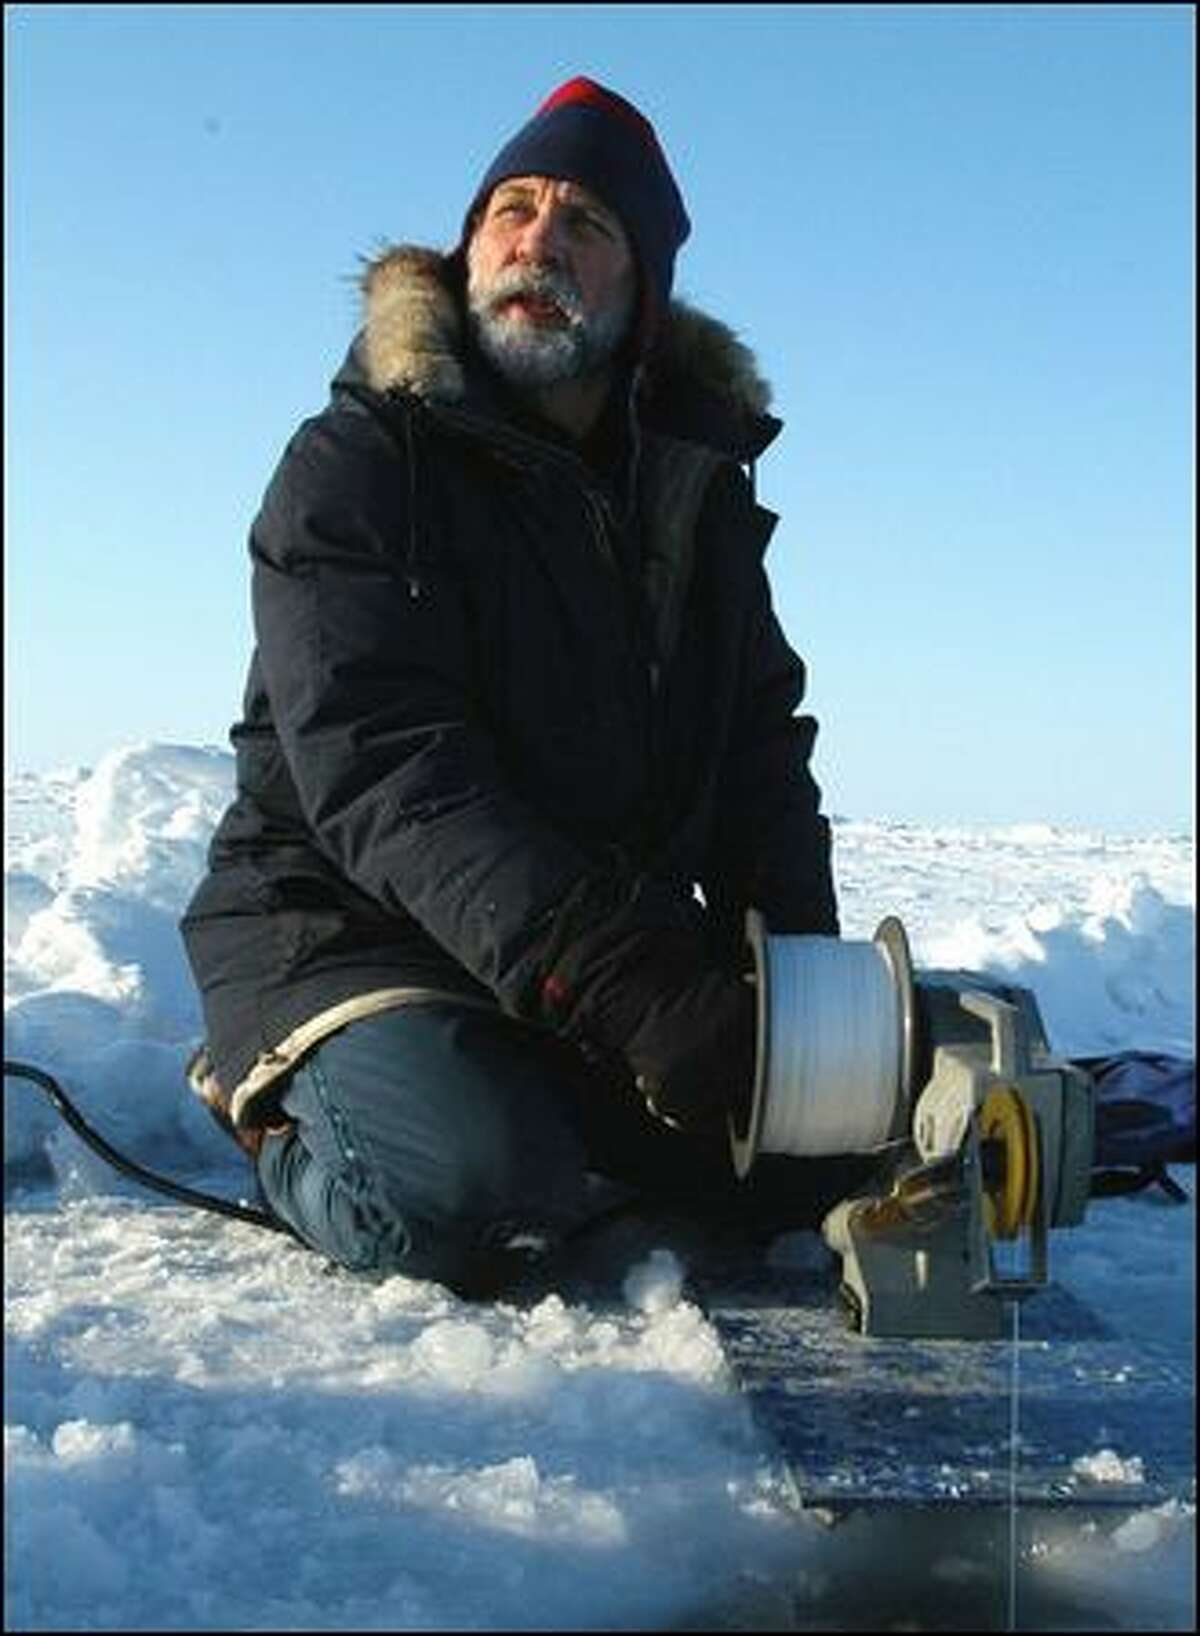 UW oceanographer and polar expert Jamie Morison, seen testing Arctic sea ice in 2003, has seen dramatic changes in the ice after more than three decades of research trips to the North Pole. The rapid melting of the sea ice also has affected his research.